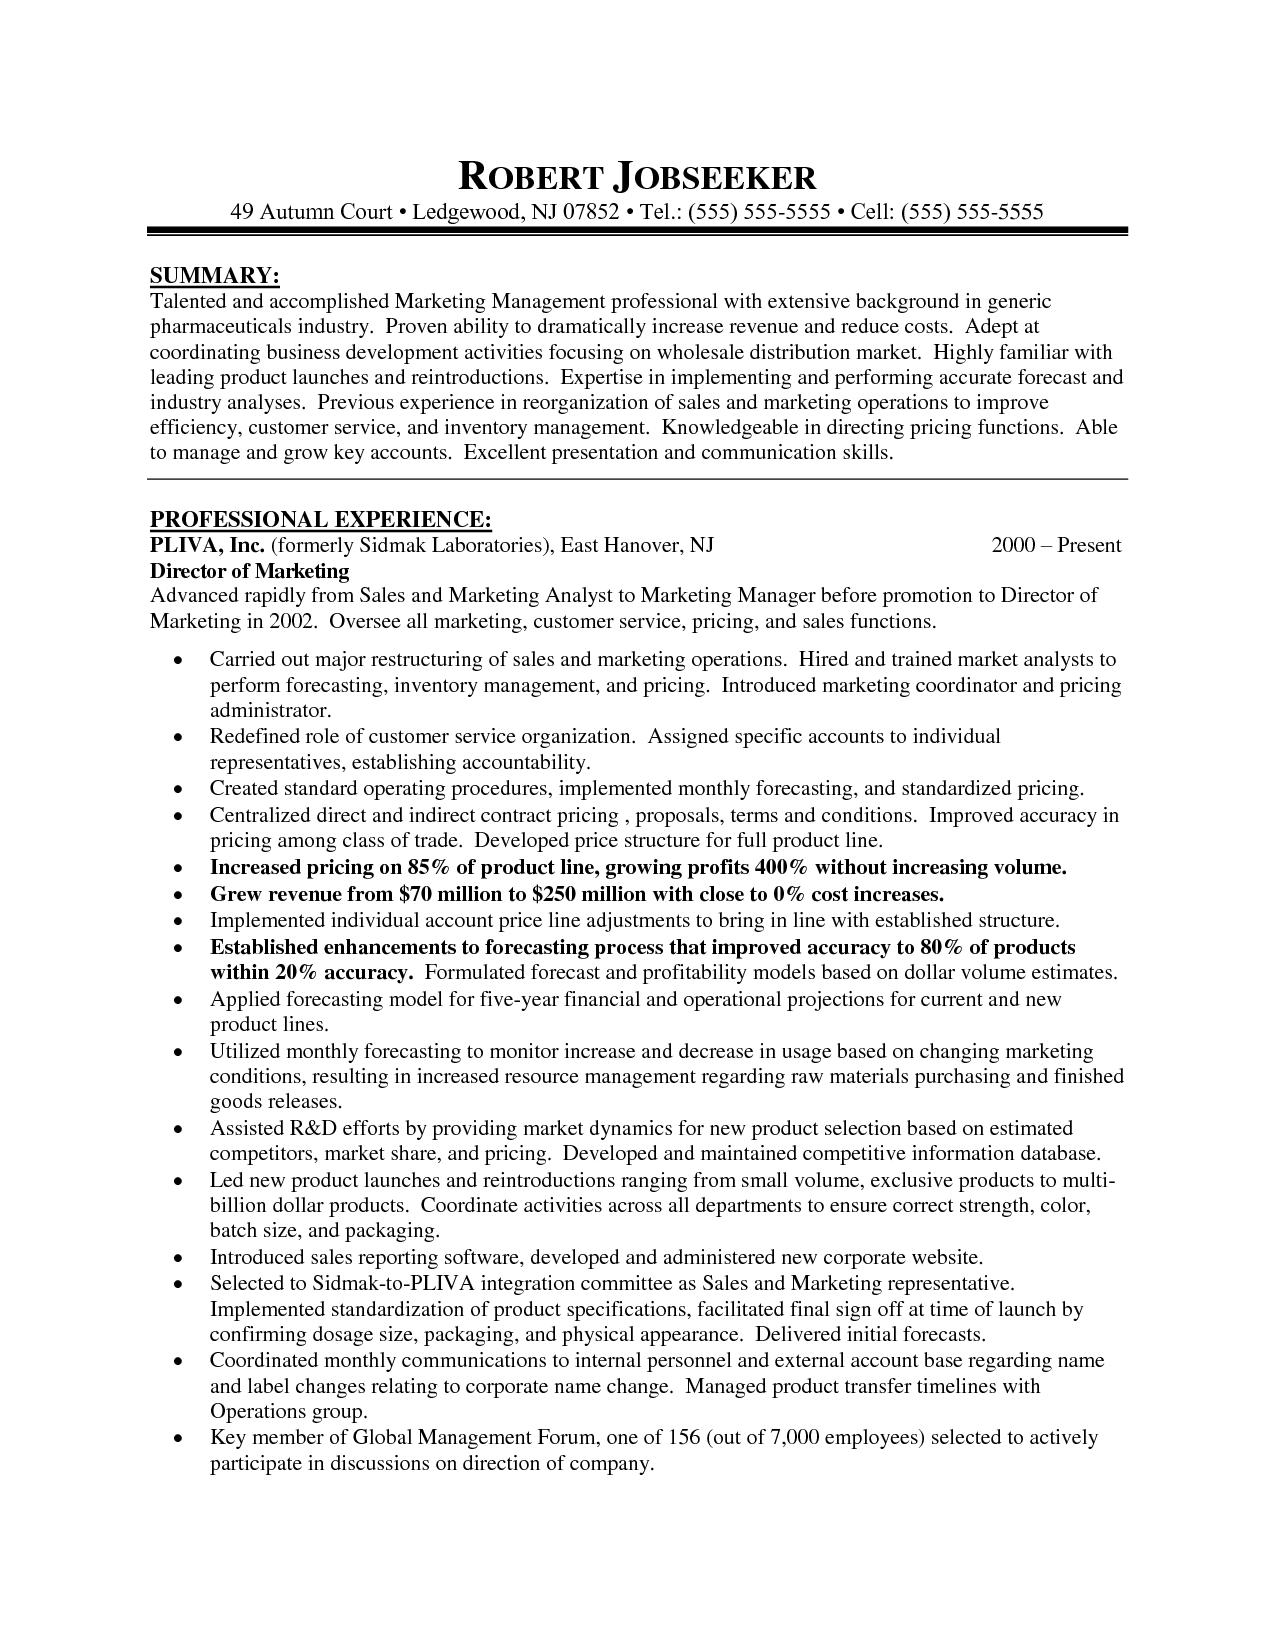 marketing director resume marketing director resume